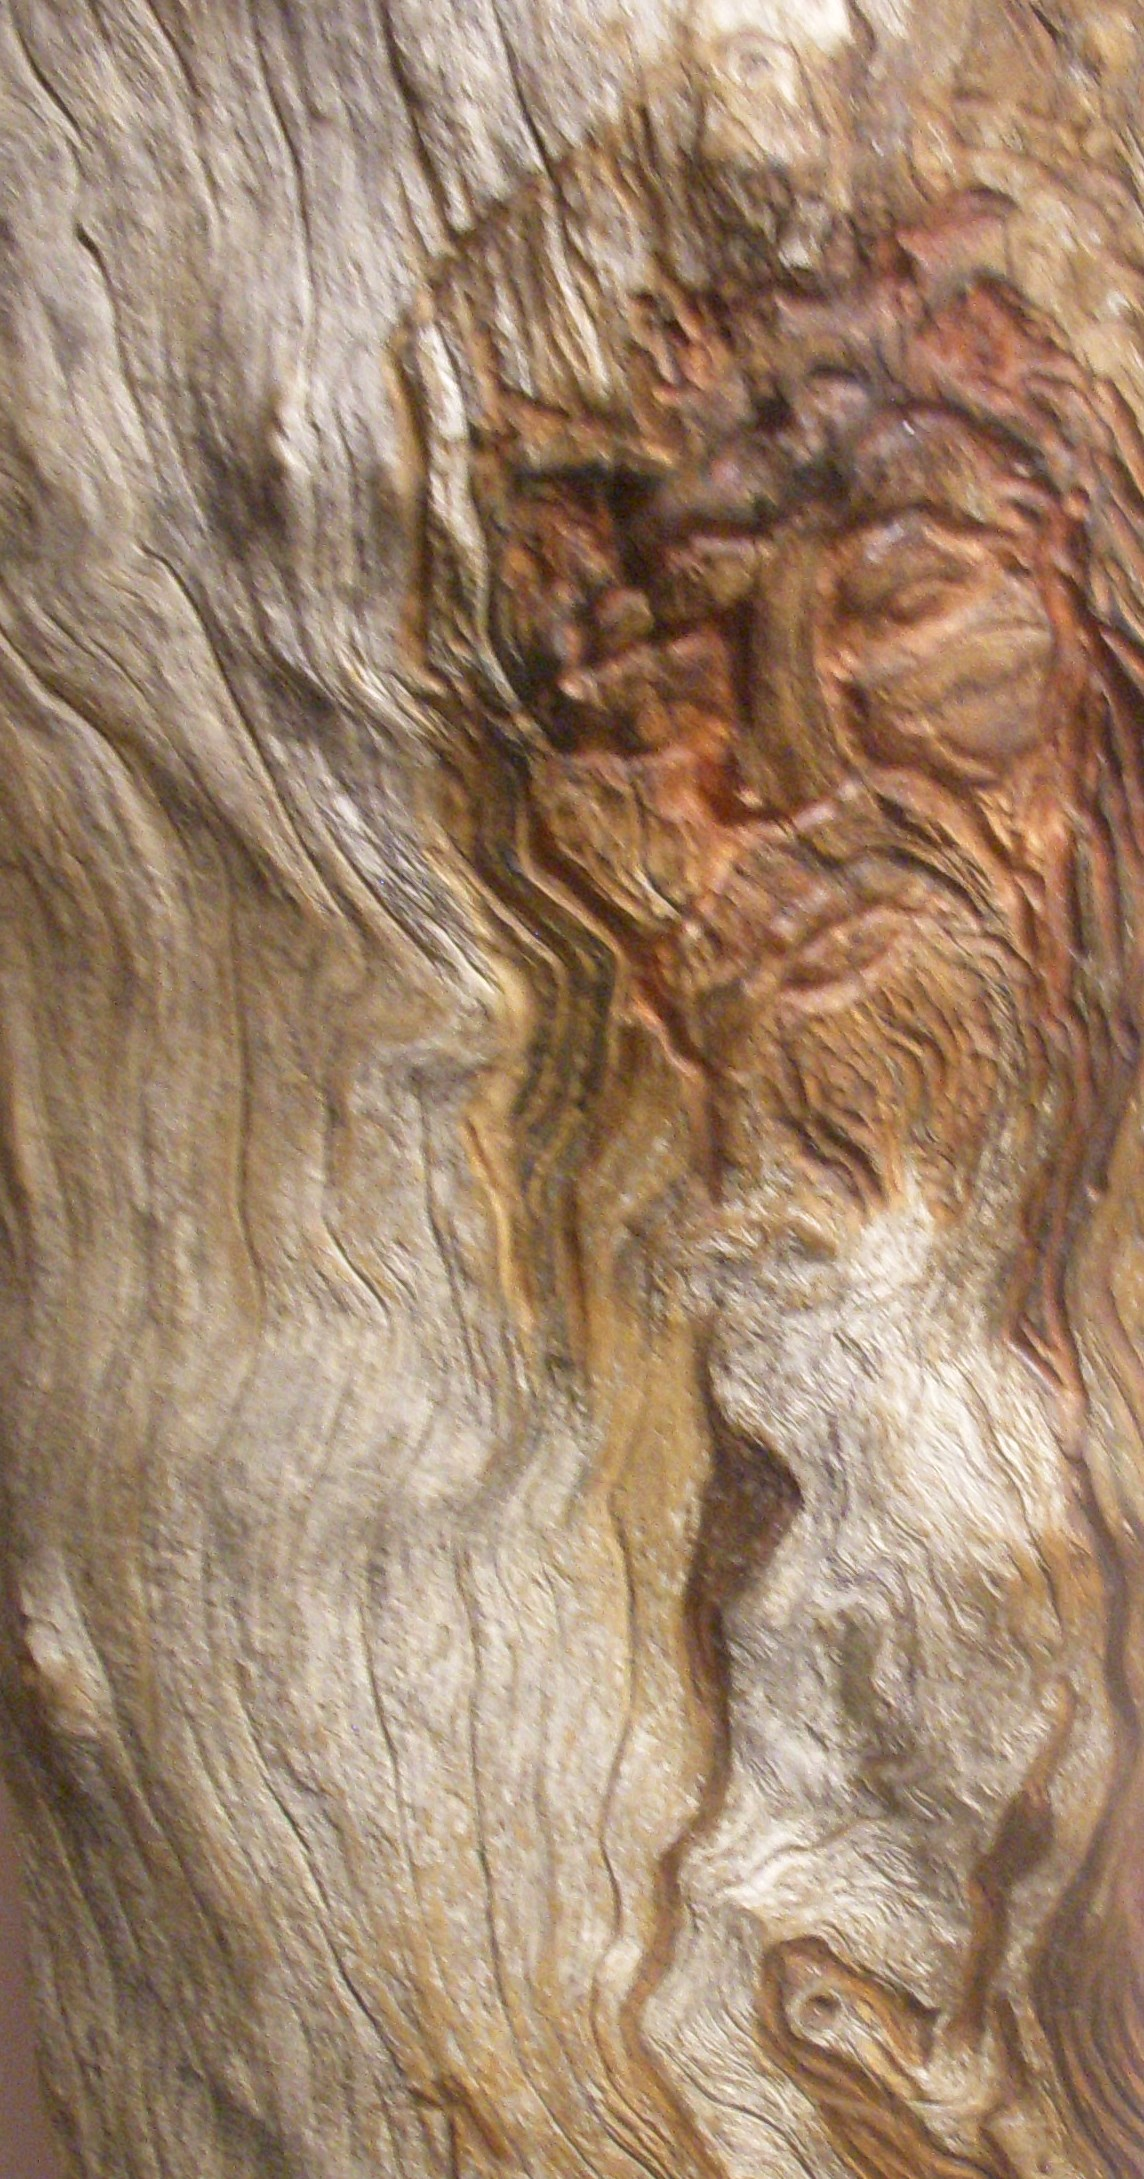 wood carving art of Jesus